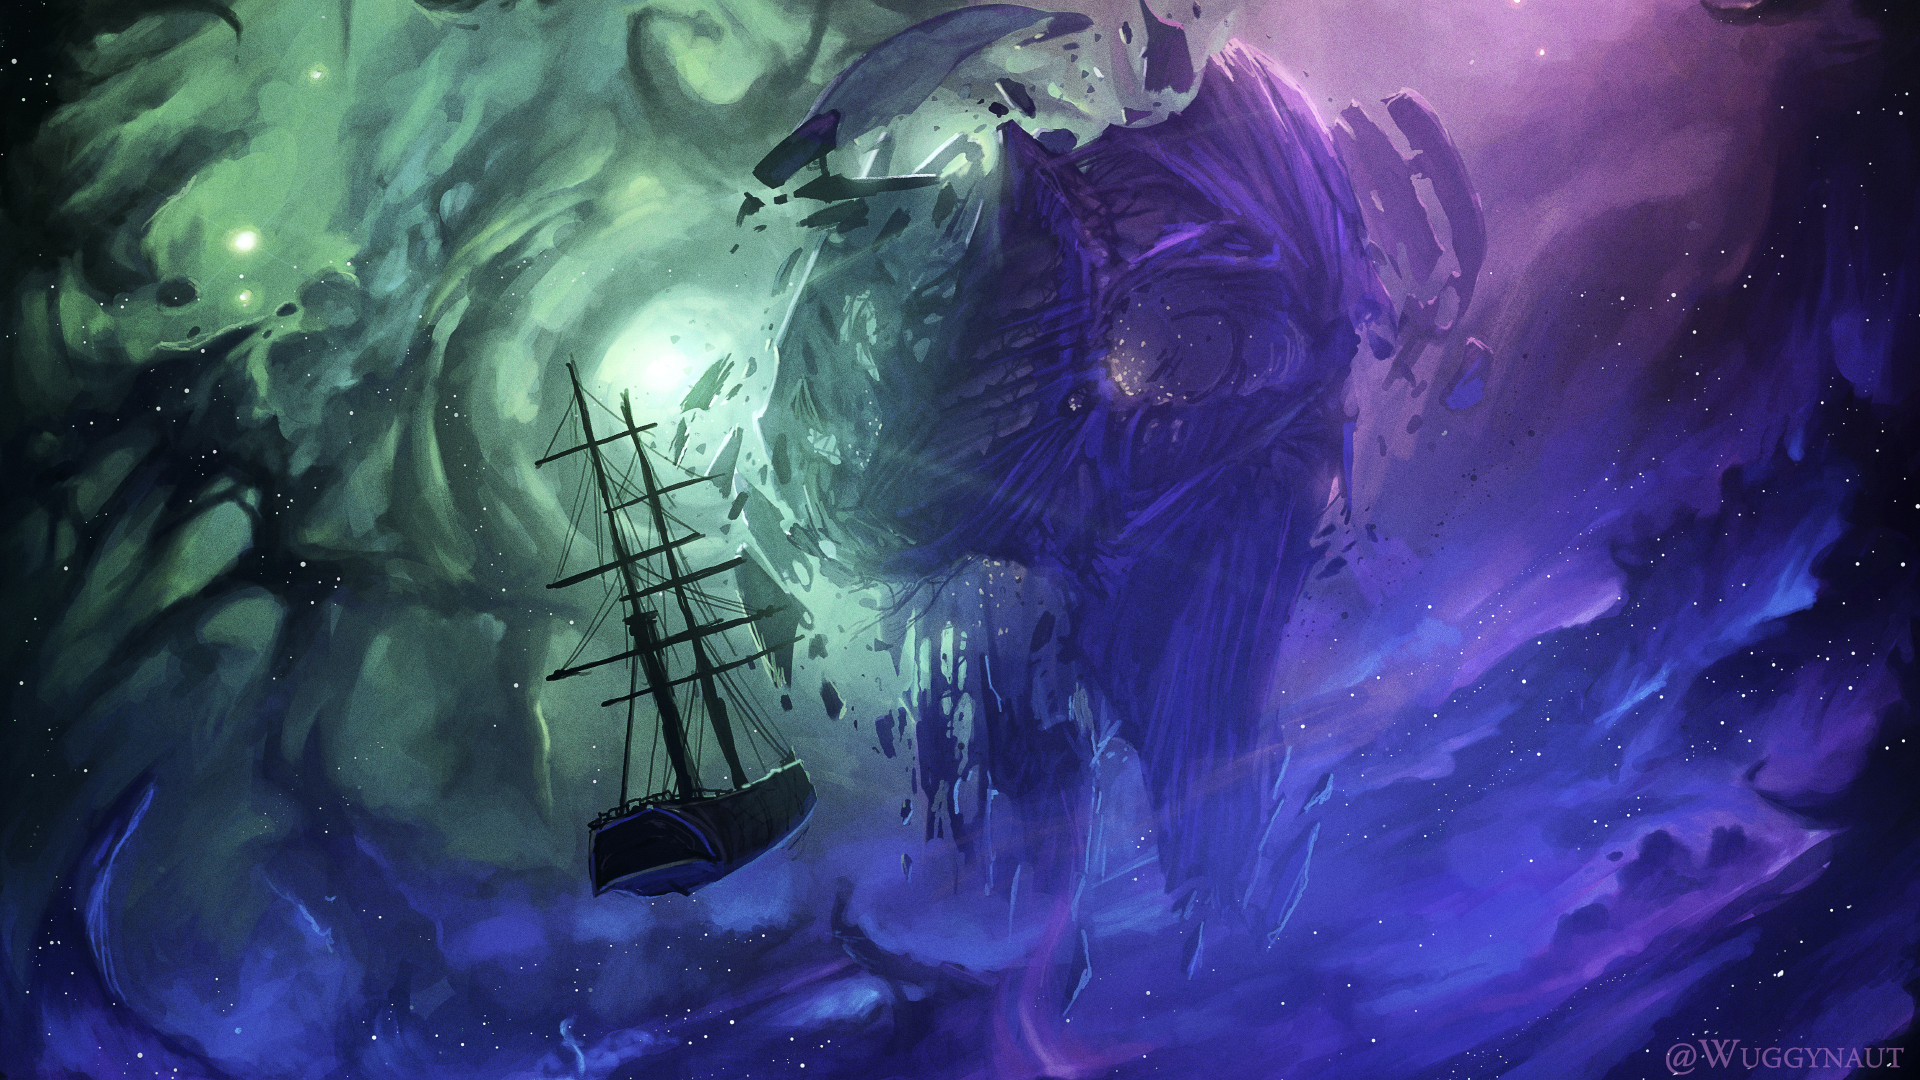 The Astral Sea